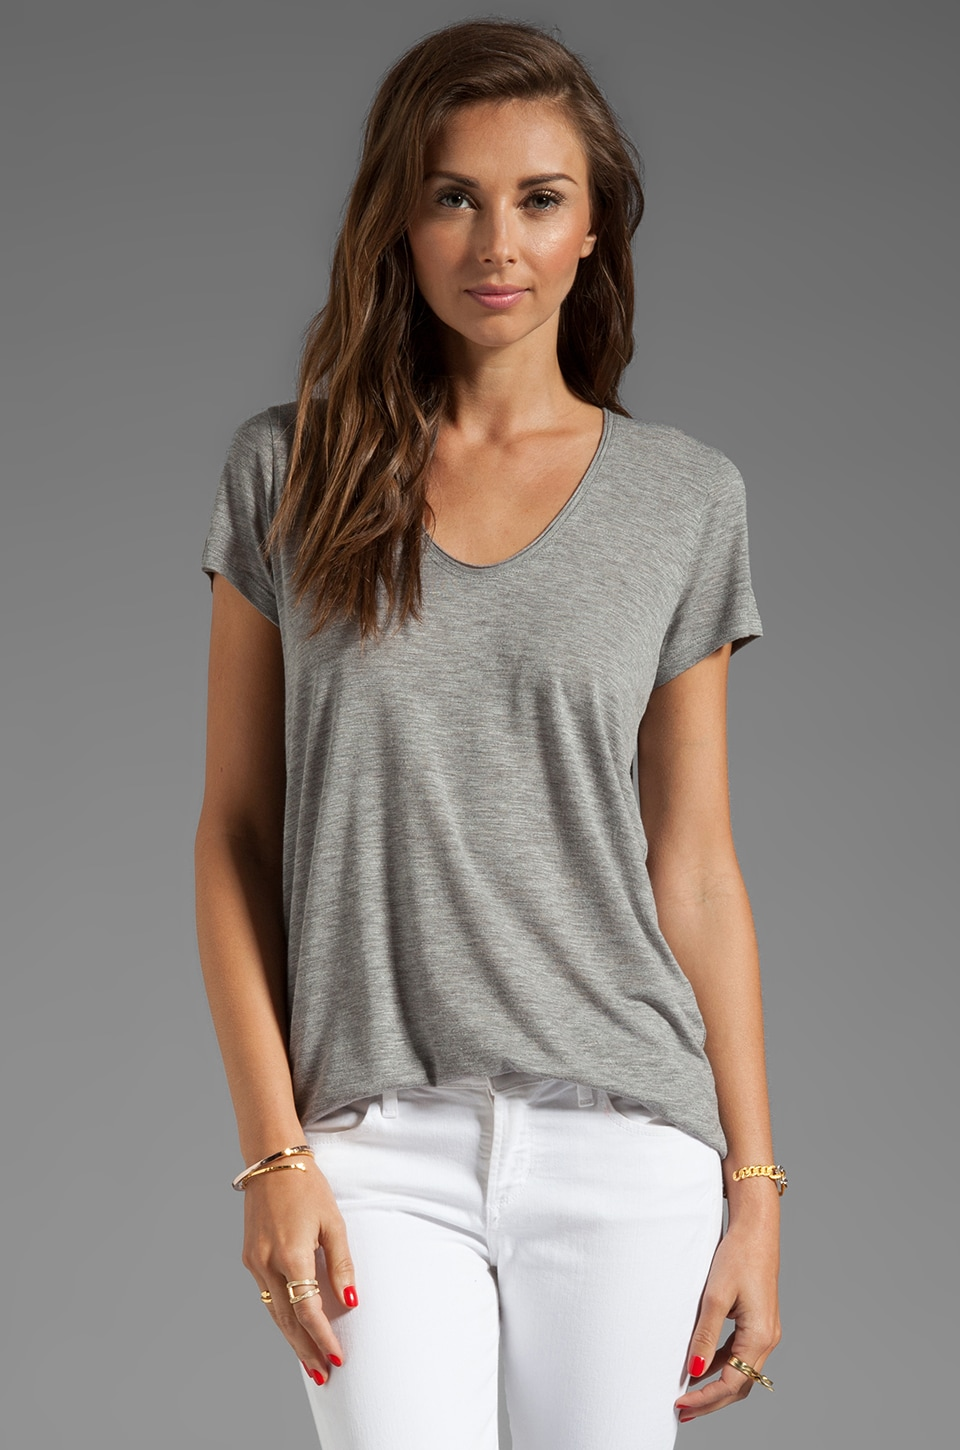 Vince Short Sleeve Rolled V-Neck Tee in Heather Grey